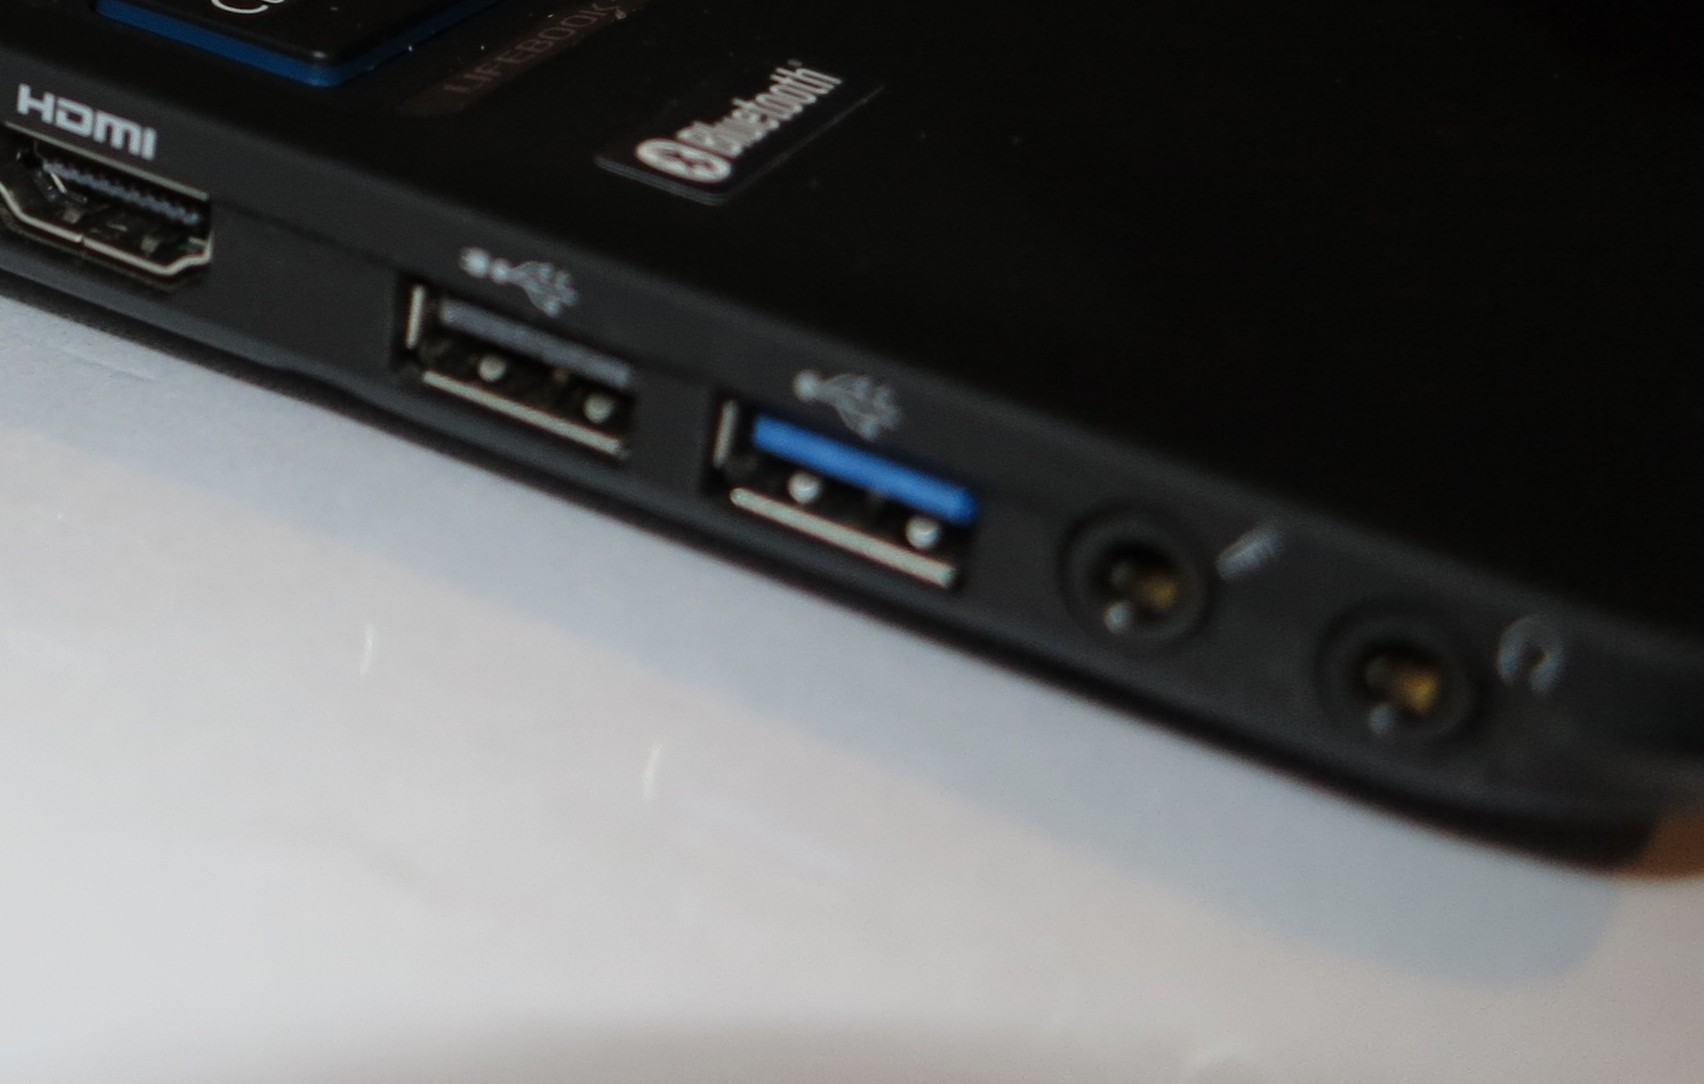 USB sockets on a laptop